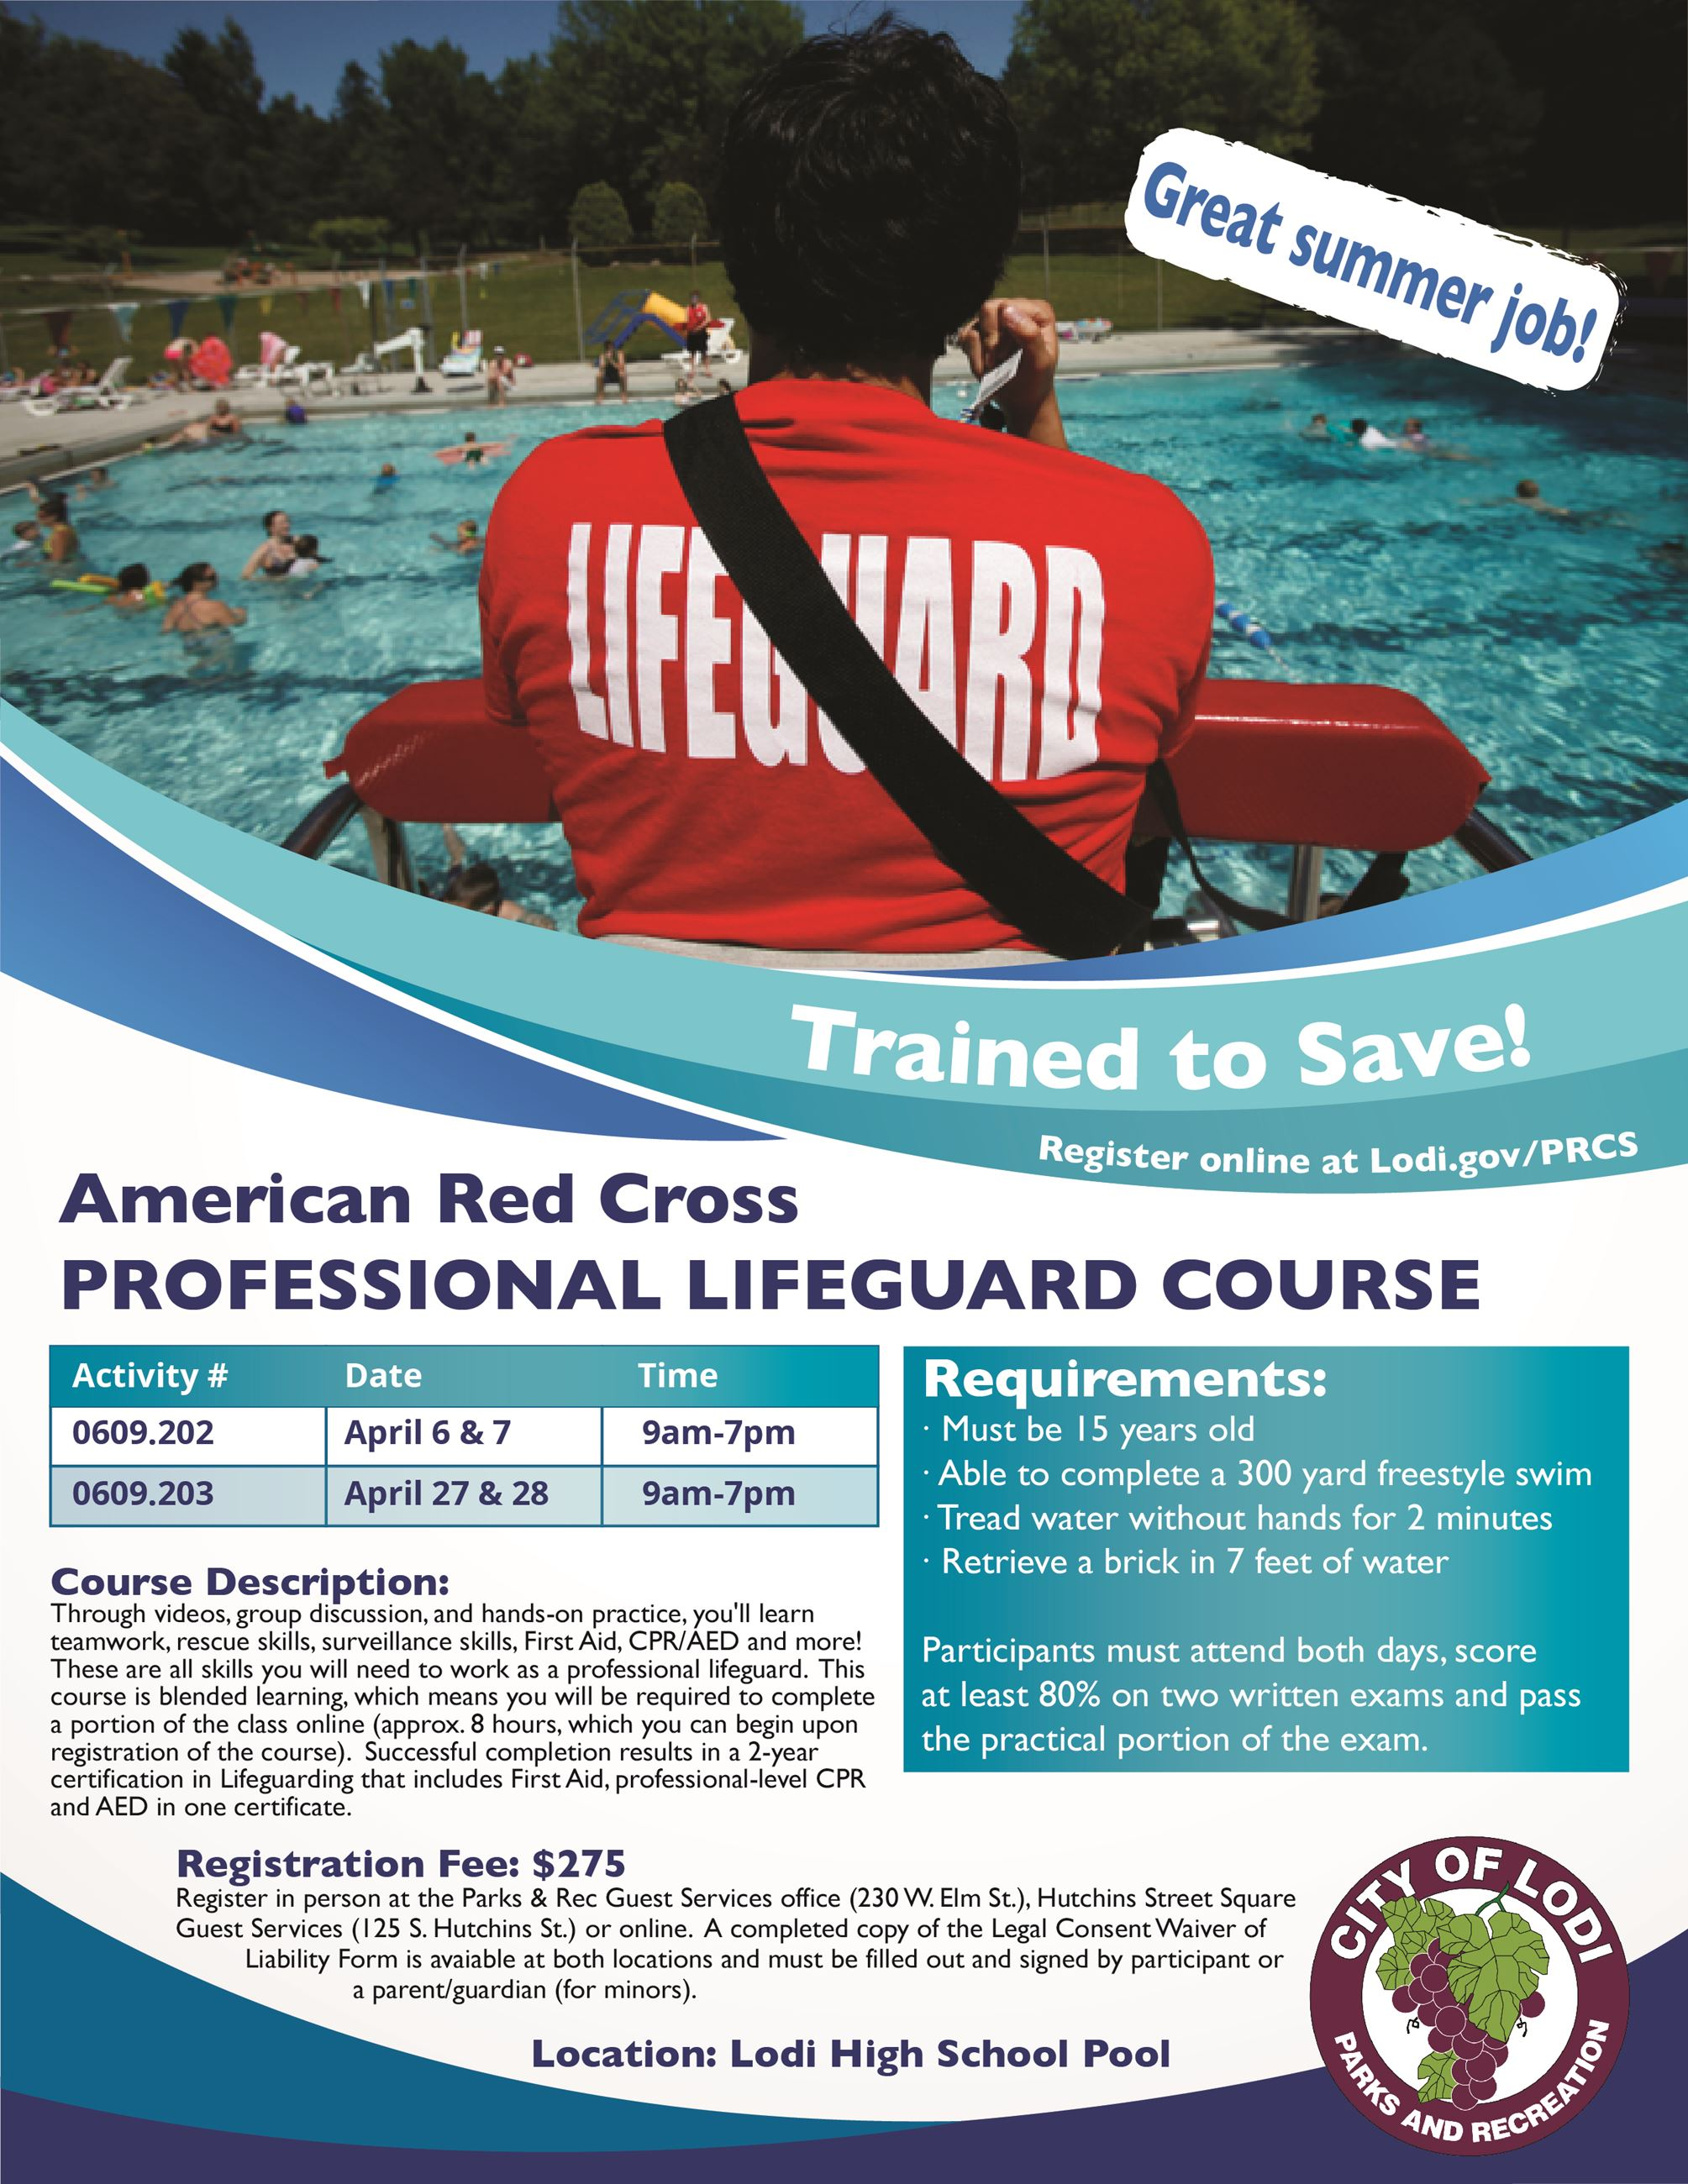 Lifeguard Course Flyer